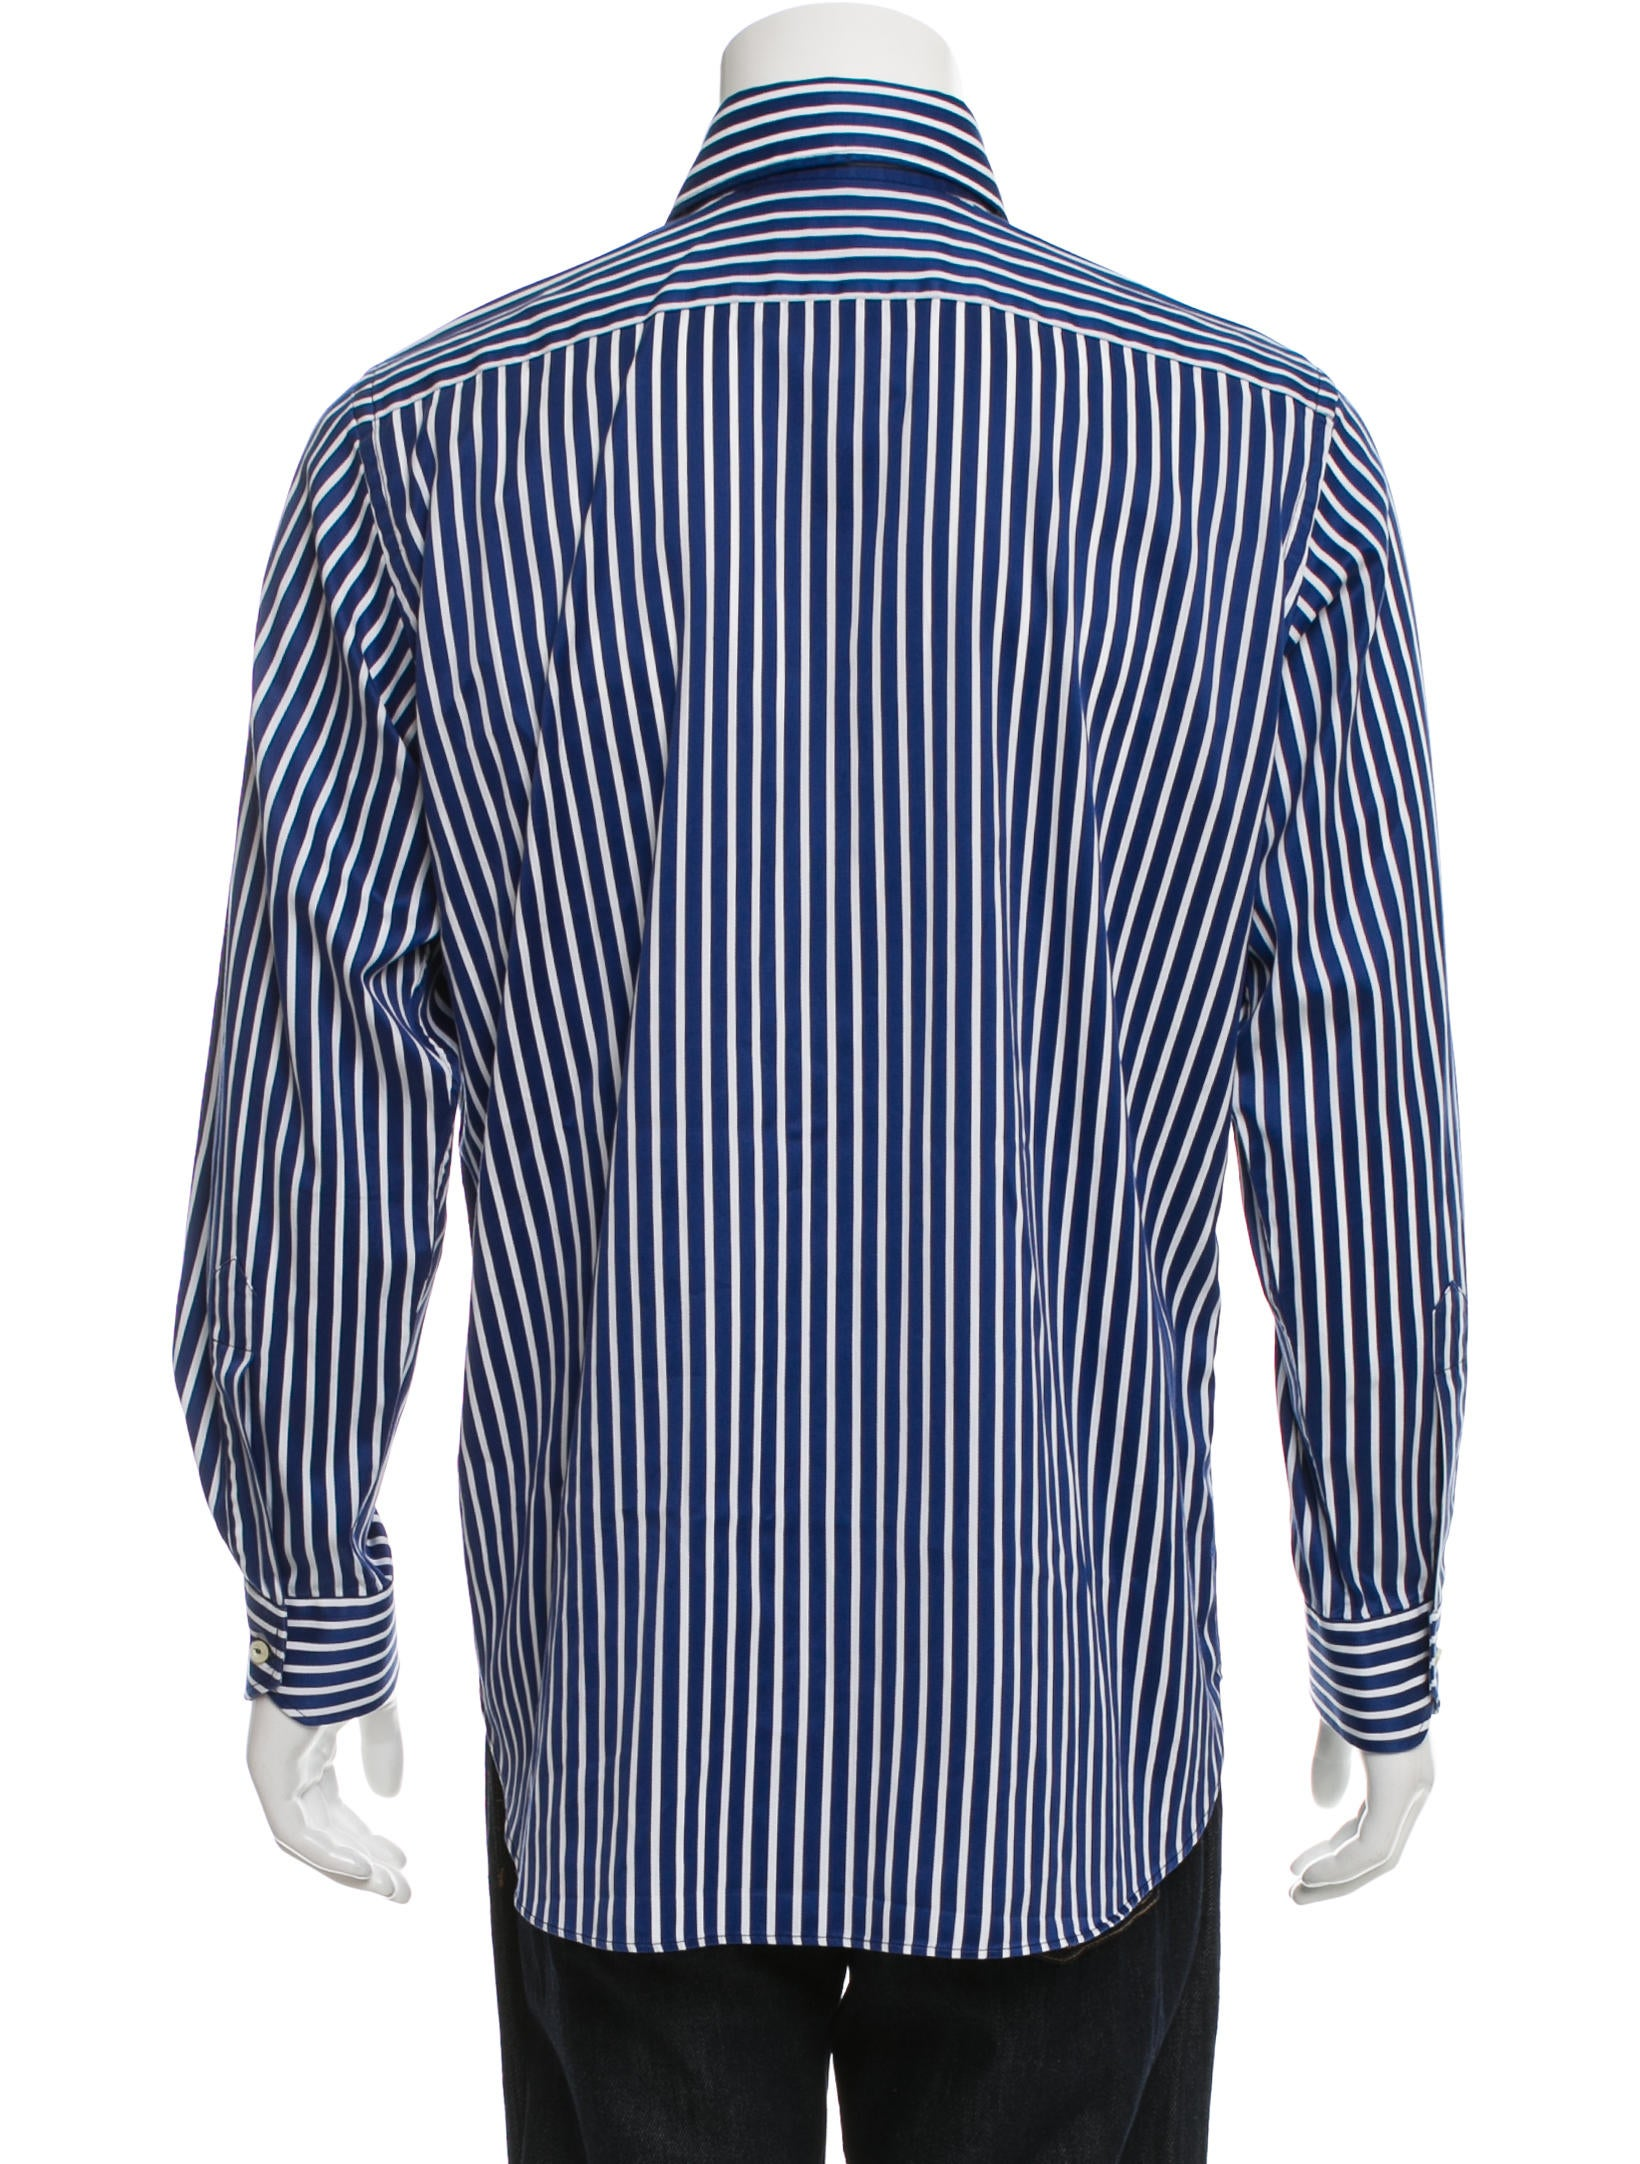 Etro striped button up shirt clothing etr46476 the for Striped button up shirt mens